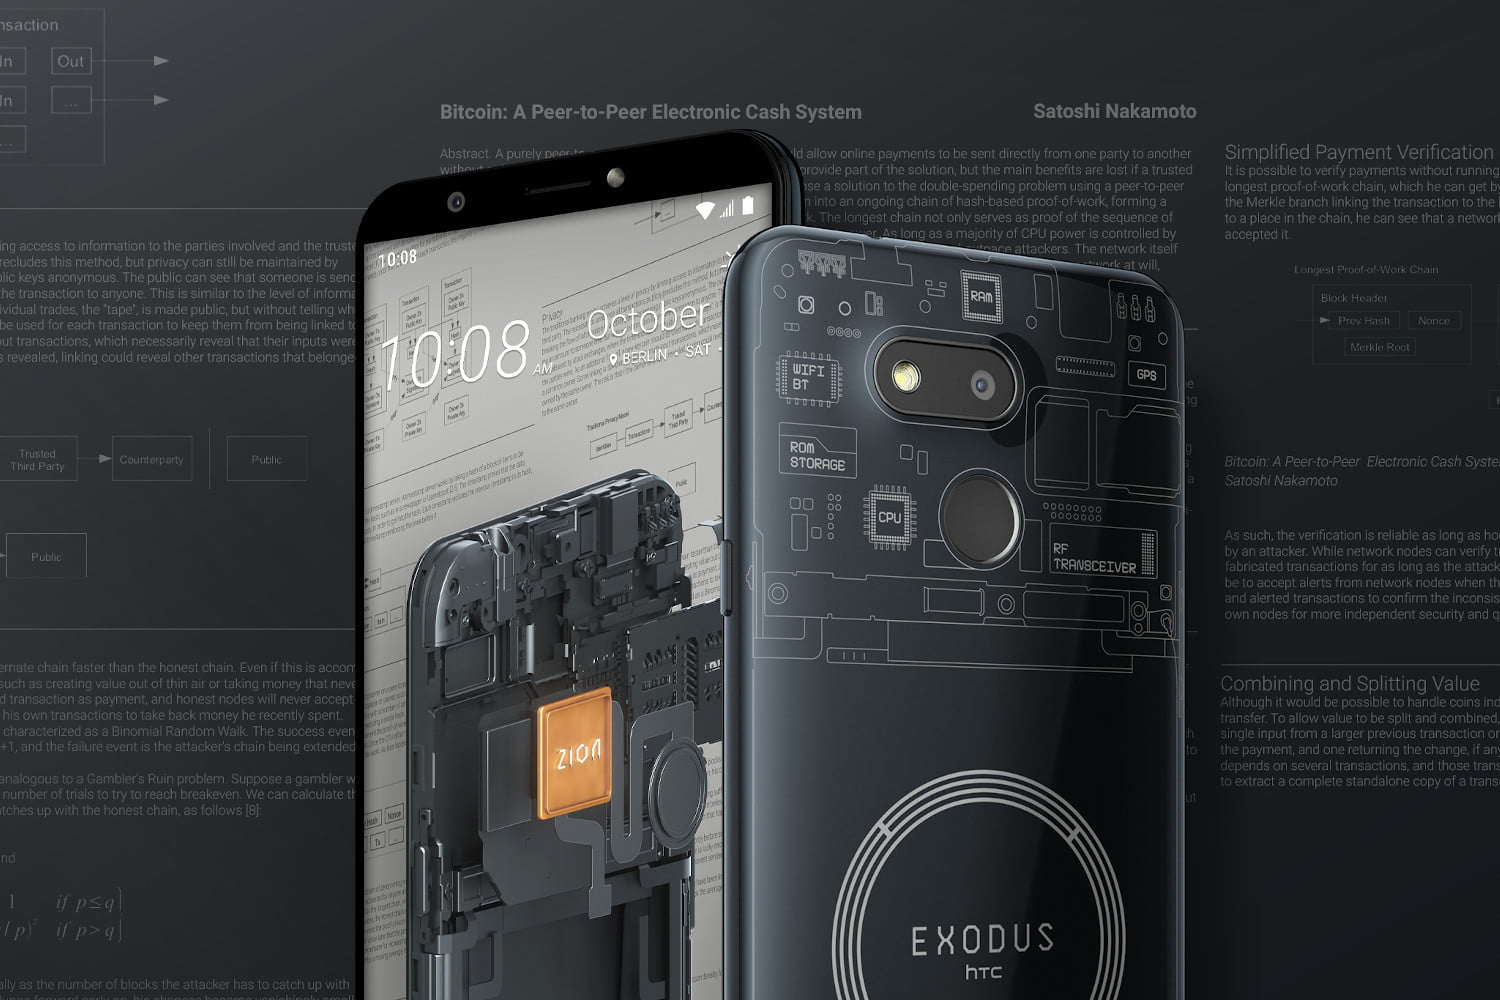 The affordable HTC Exodus 1s puts a full Bitcoin node in your pocket